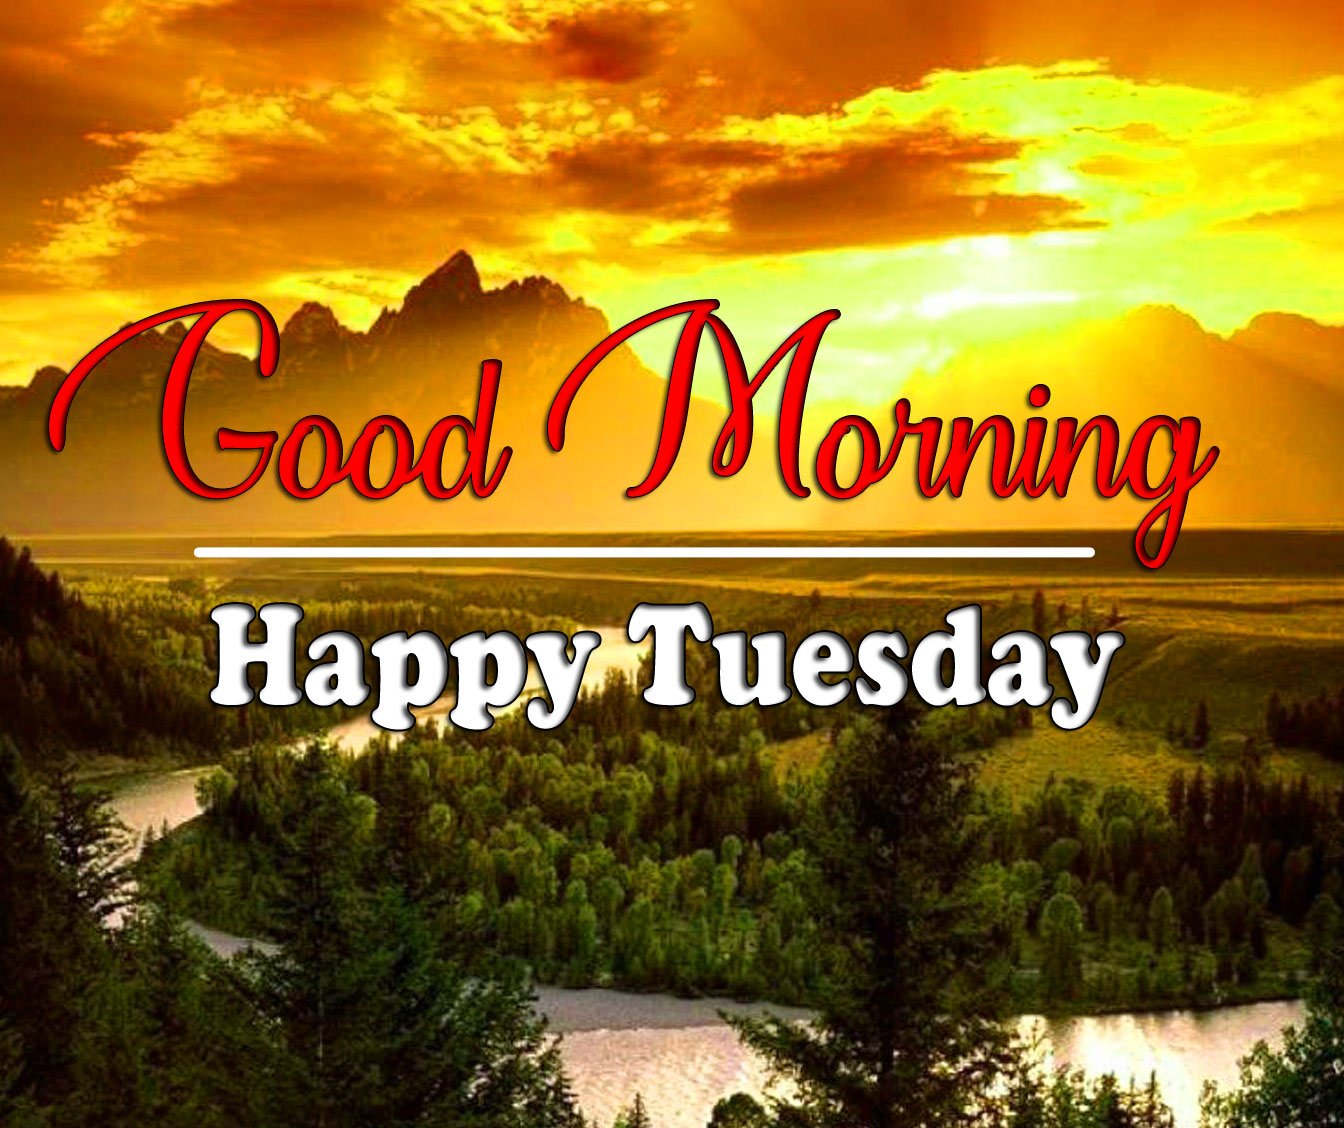 Free New Best Tuesday Good morning Images 2